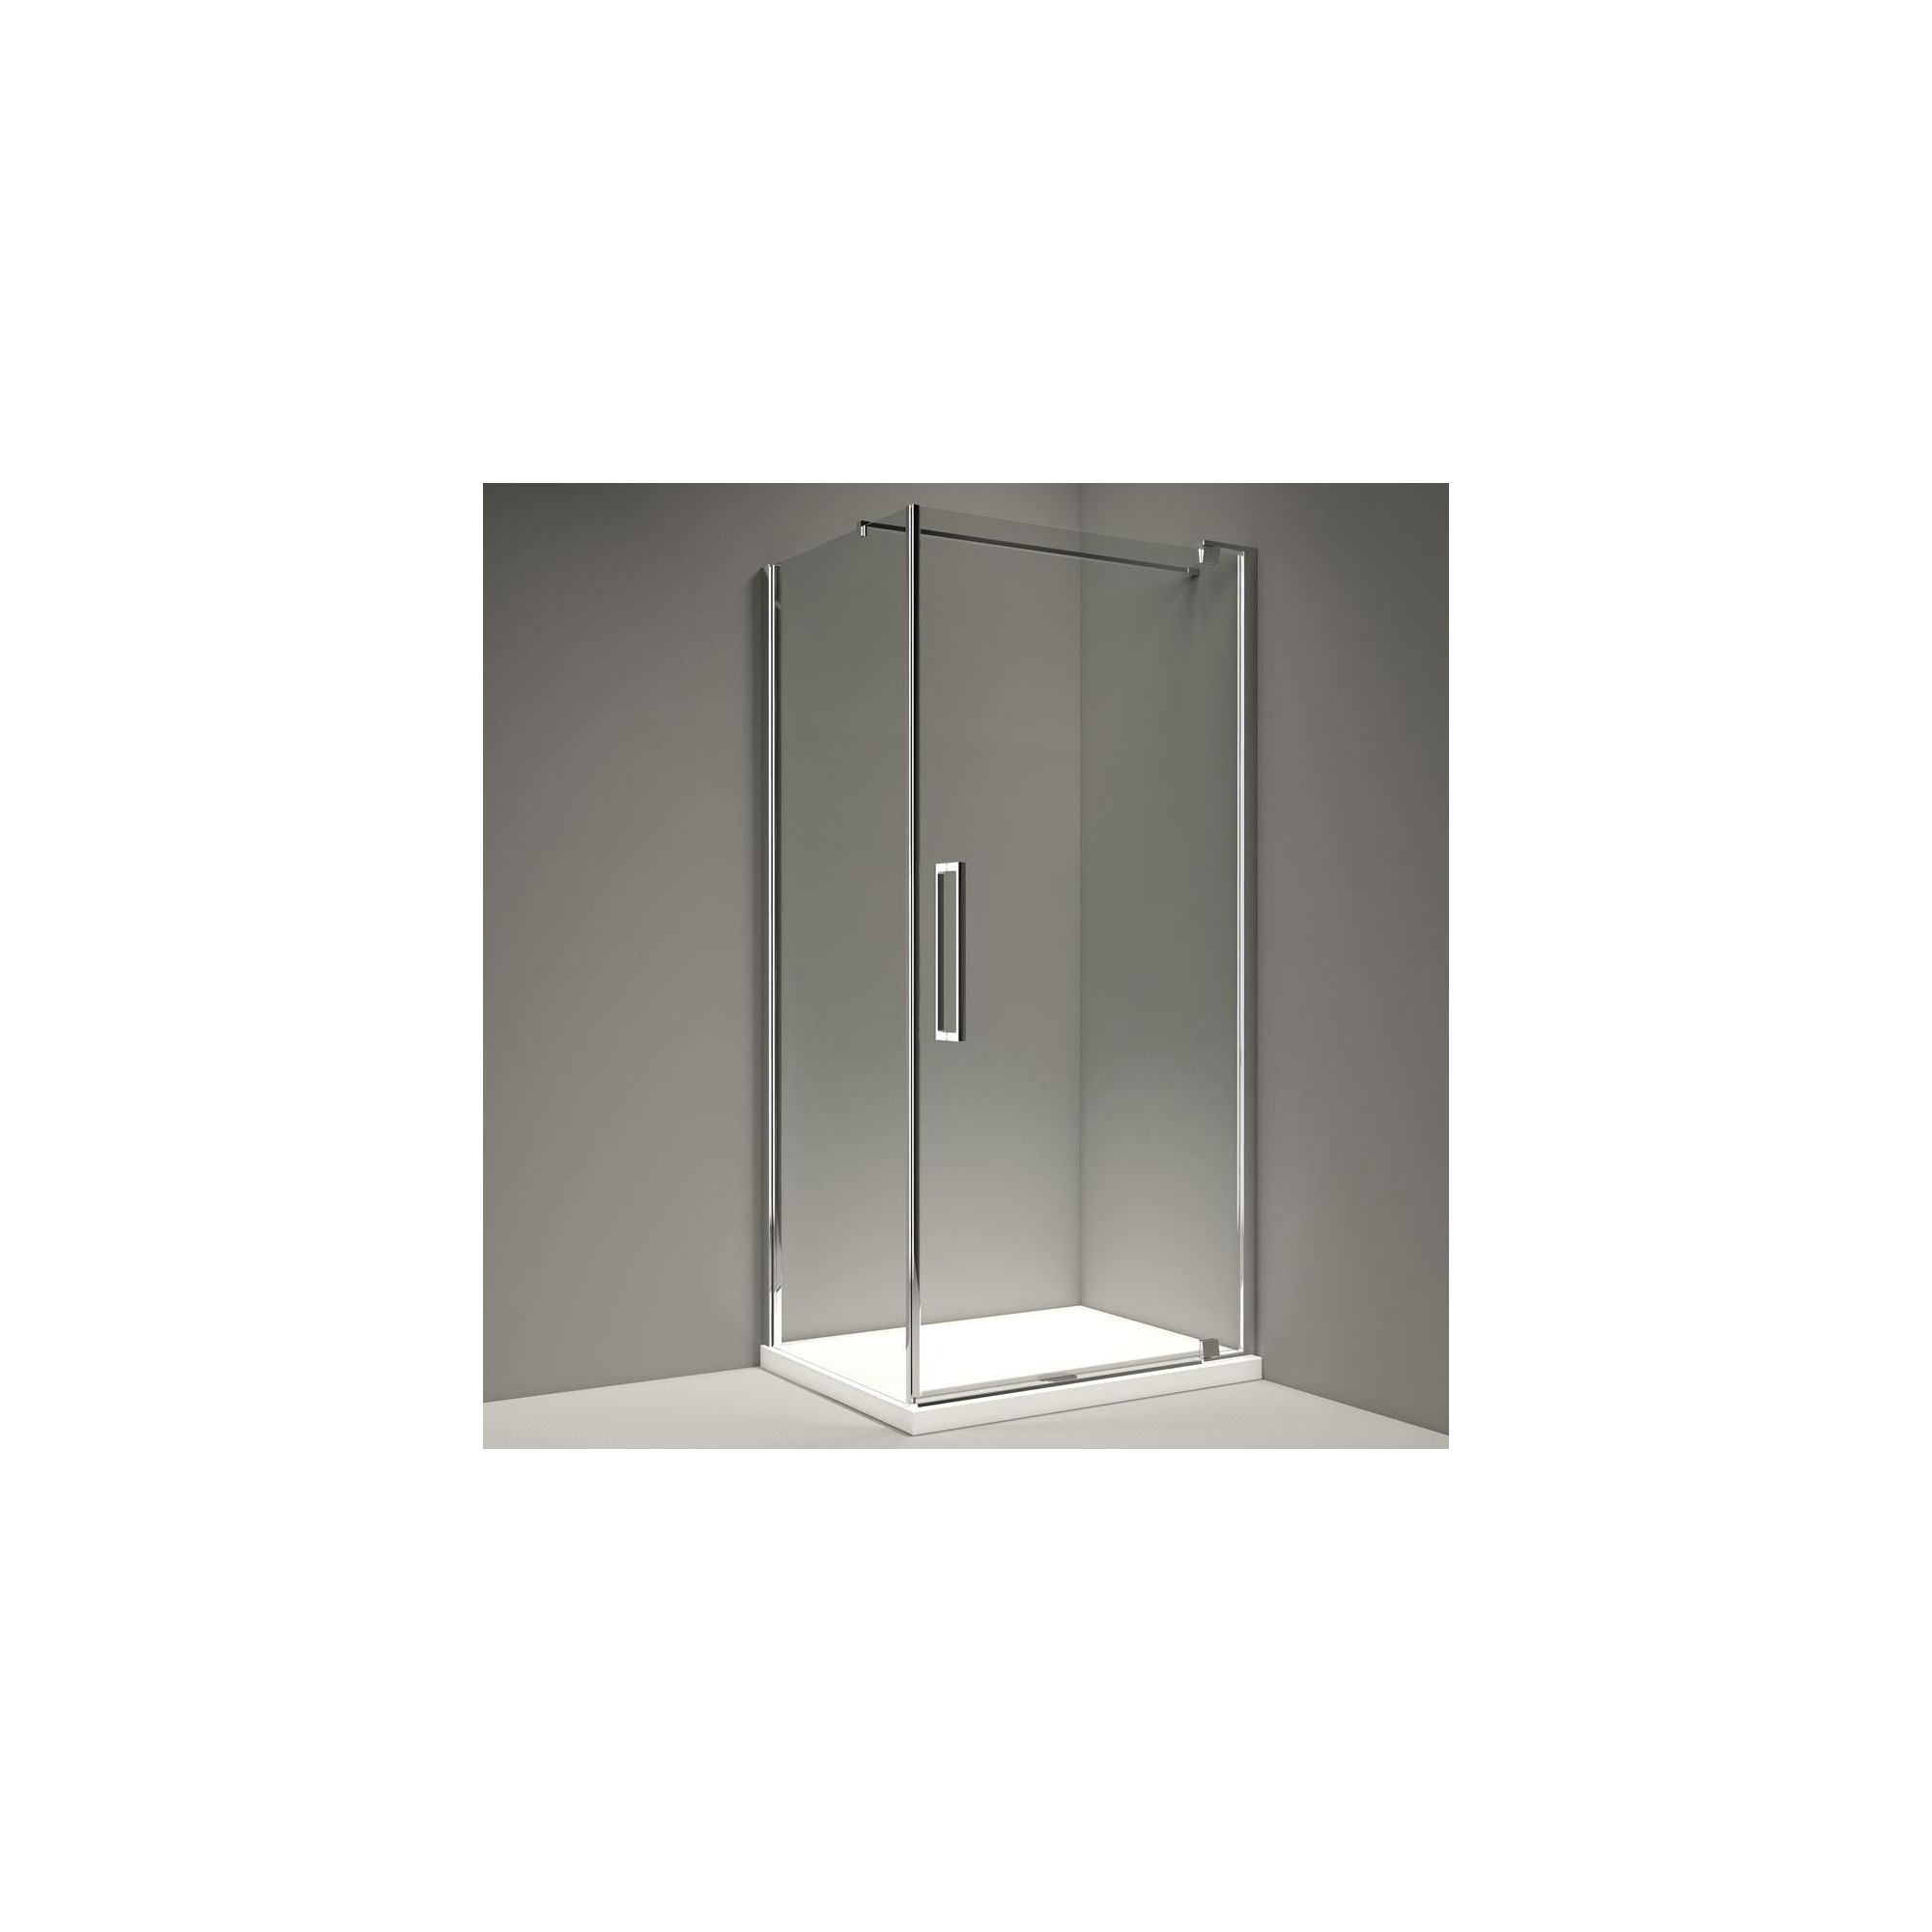 Merlyn Series 10 Pivot Shower Door, 1000mm Wide, 10mm Clear Glass at Tesco Direct